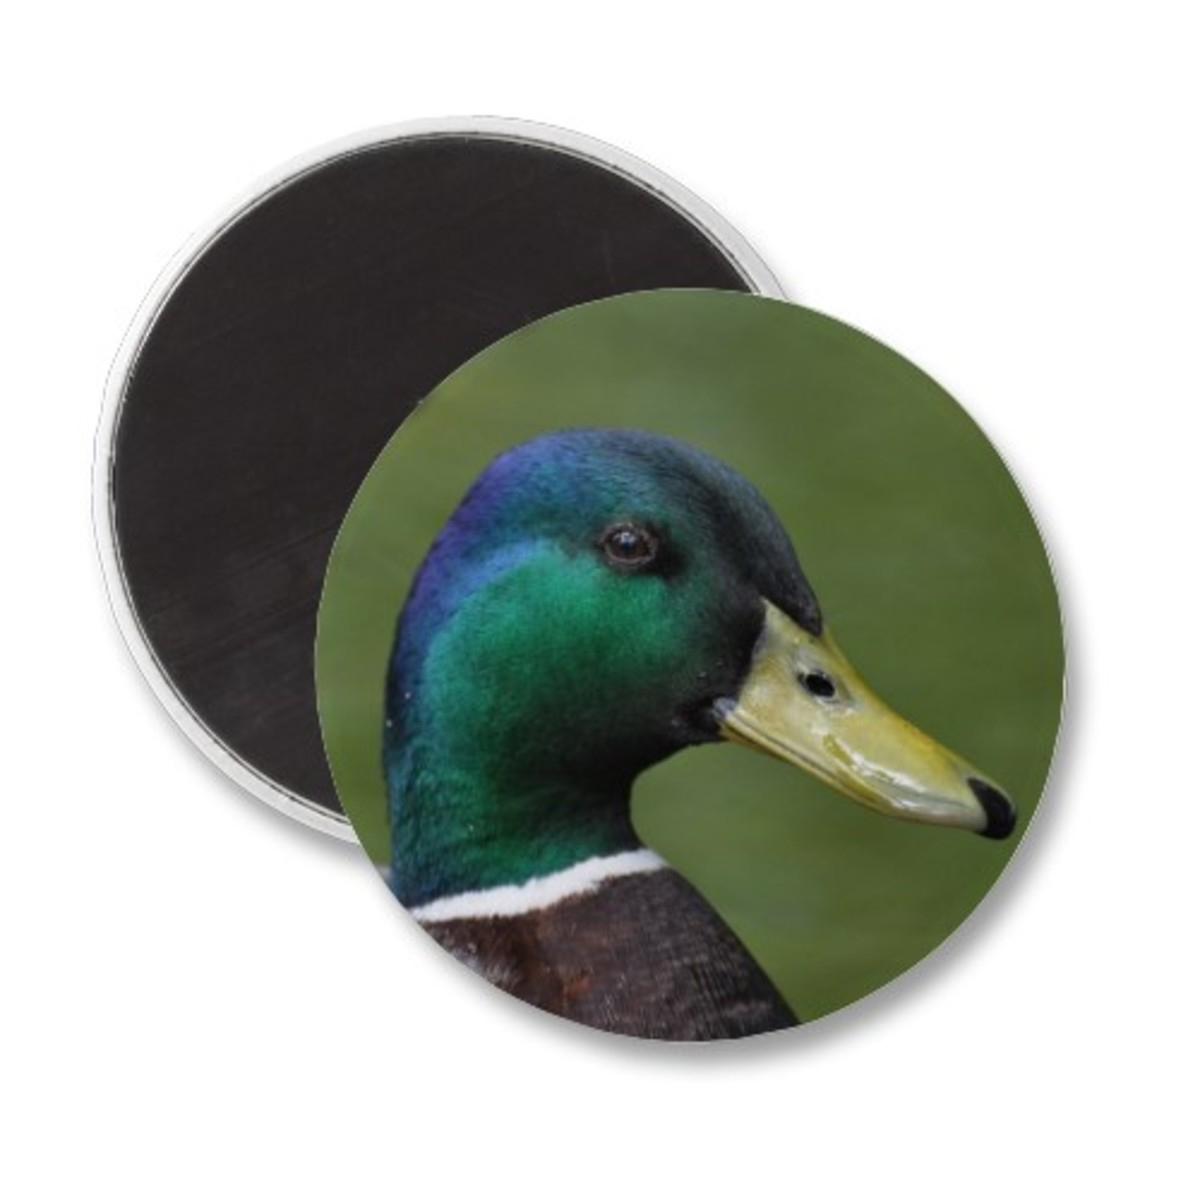 Male mallard magnet.  More cards and gifts available on Zazzle.com - follow the link to browse.